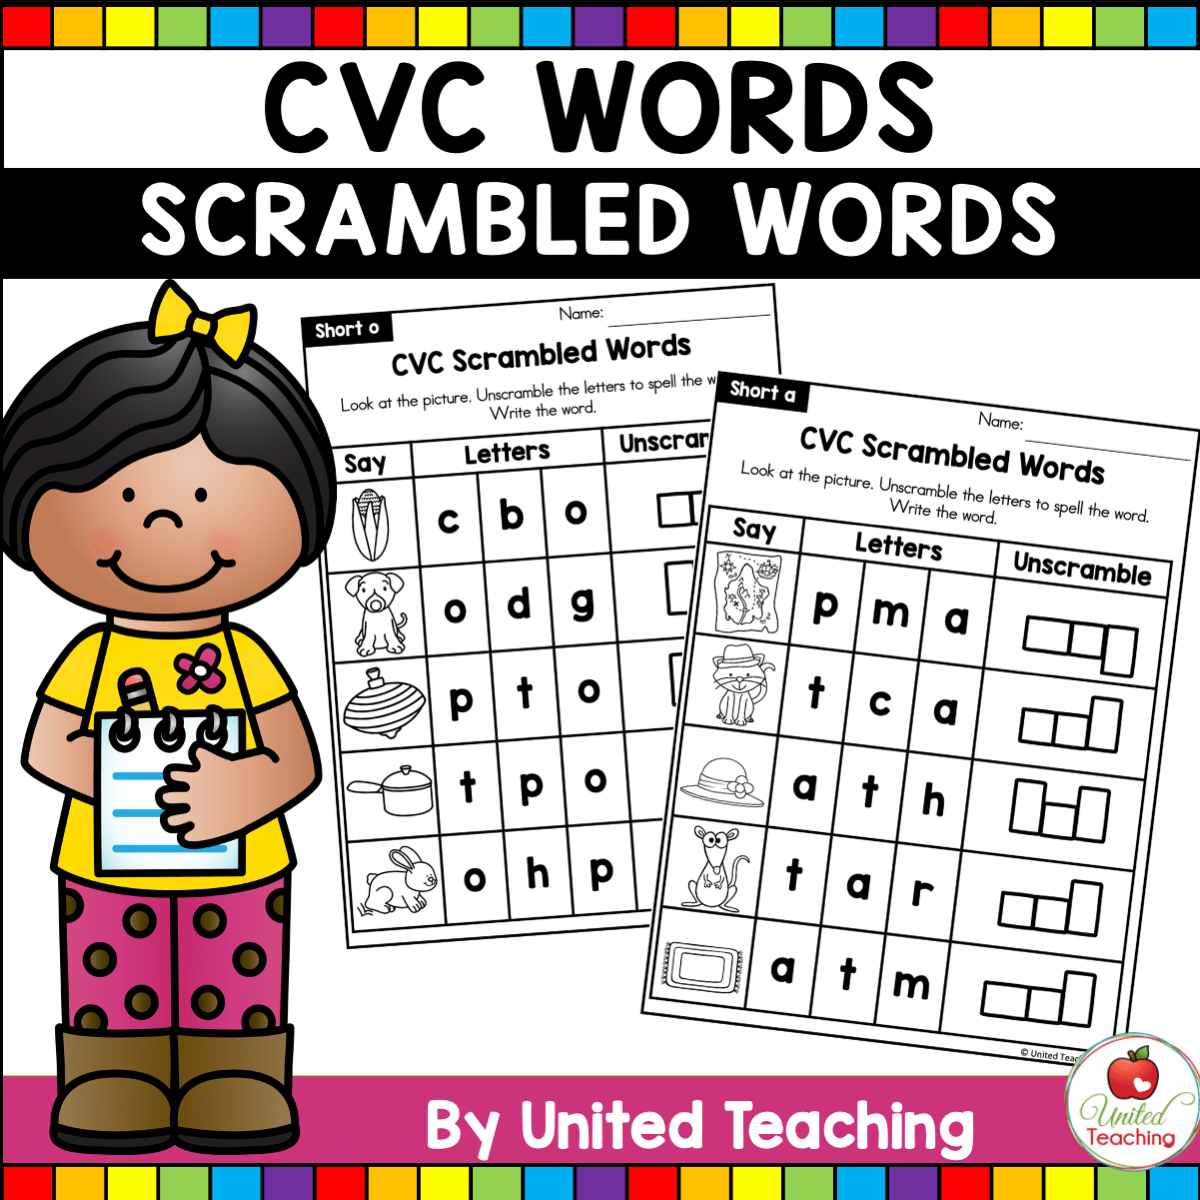 Cvc Words Scrambled Cvc Words